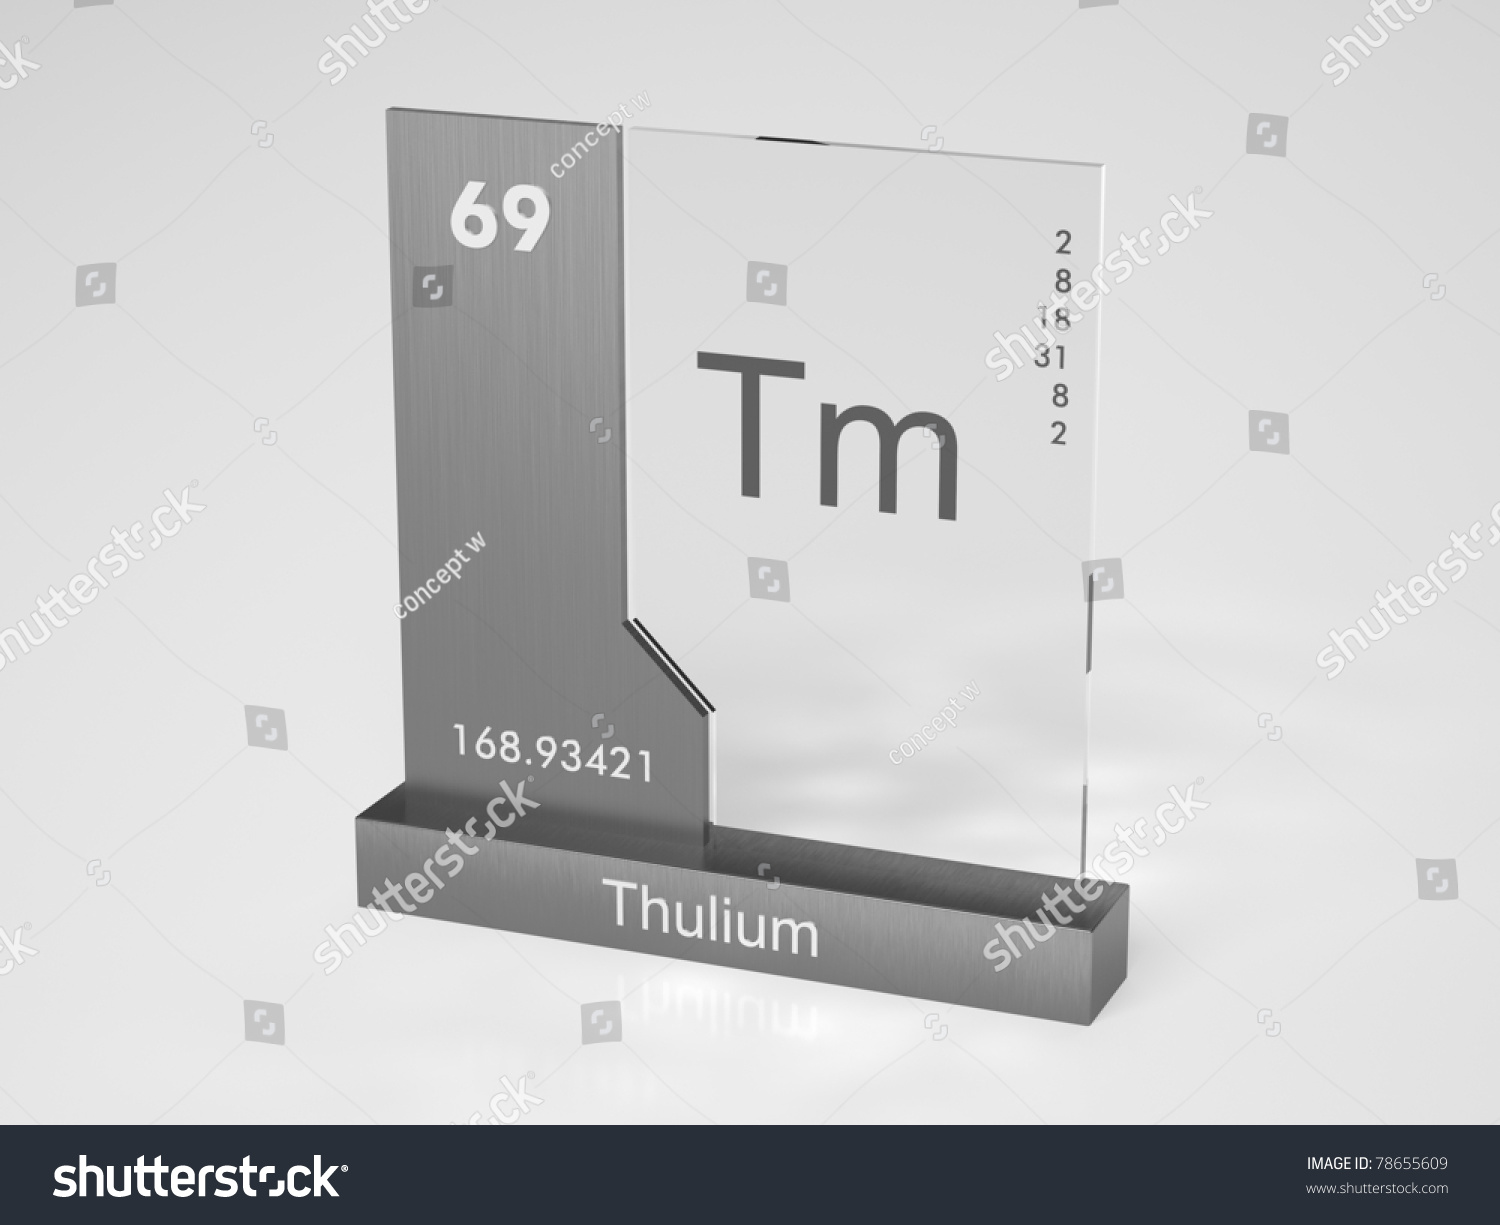 Thulium symbol tm chemical element periodic stock illustration thulium symbol tm chemical element of the periodic table gamestrikefo Gallery